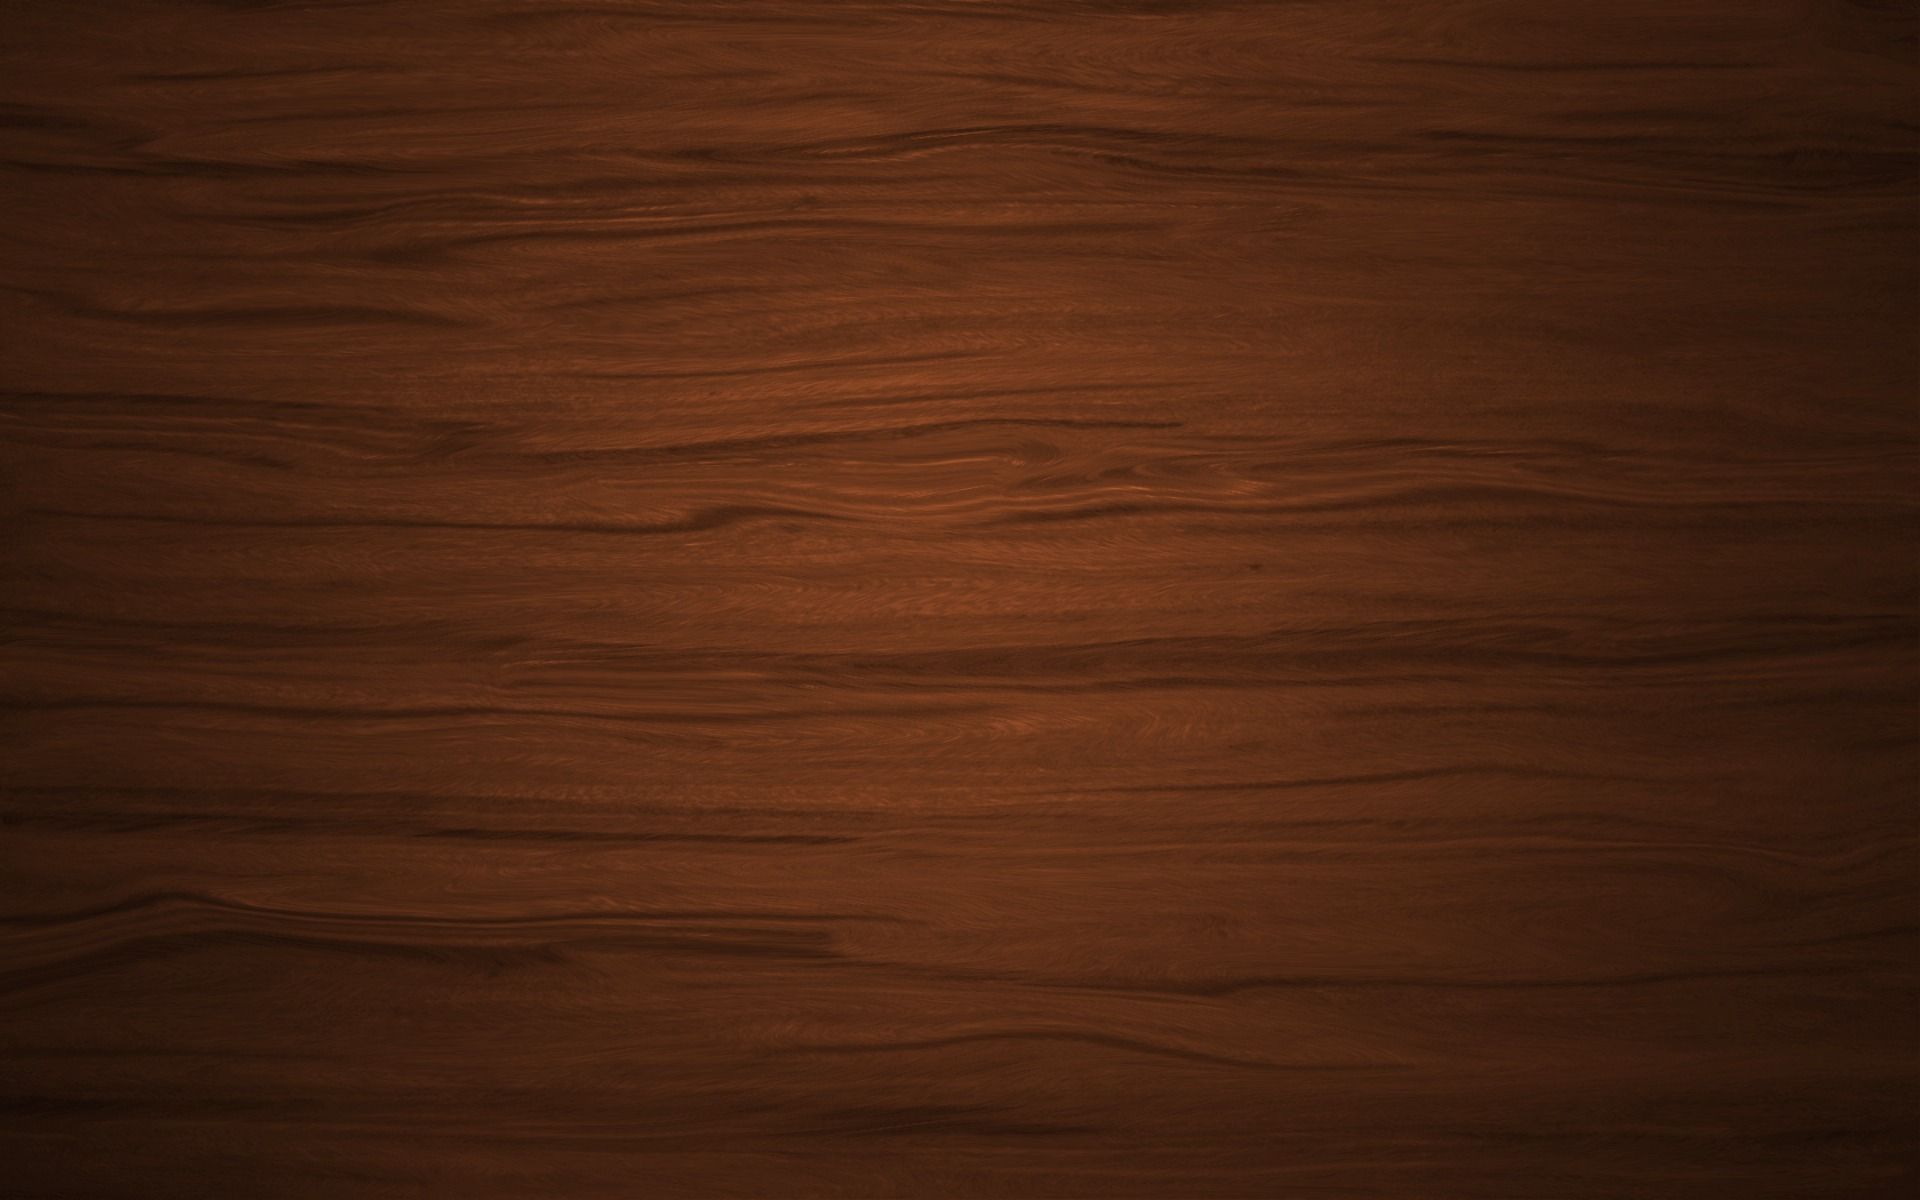 High Resolution Wood Texture Cerca Con Google WOOD